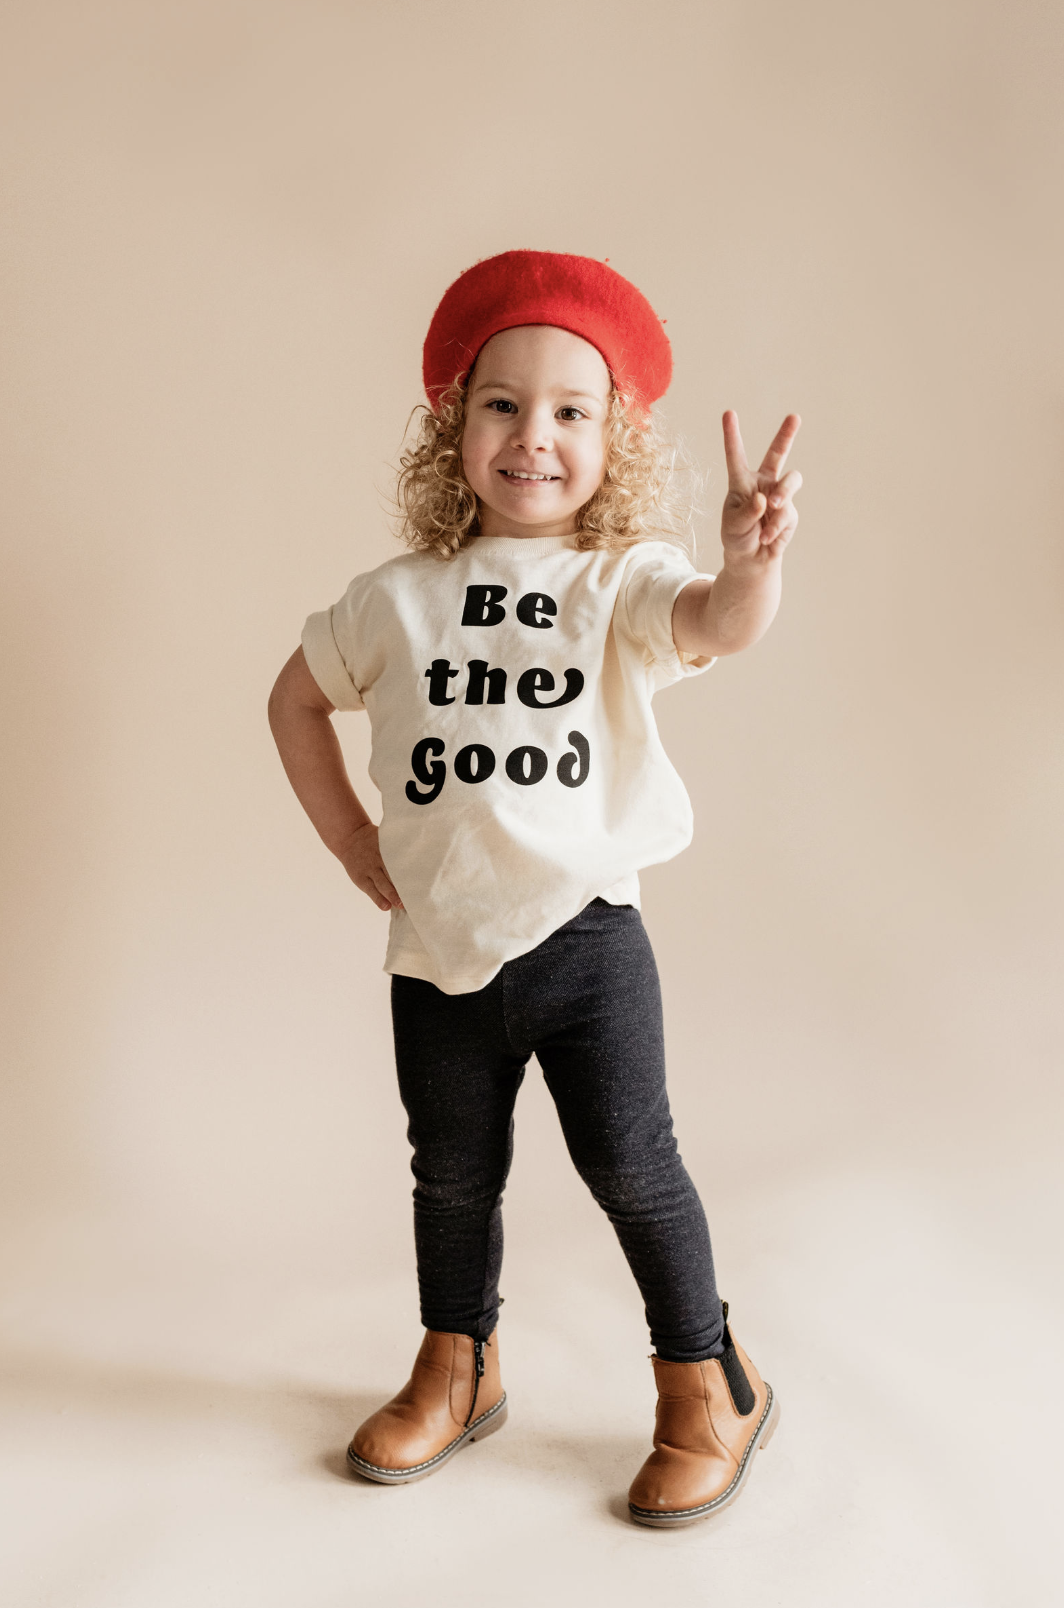 Tee, Be The Good Kid/Toddler